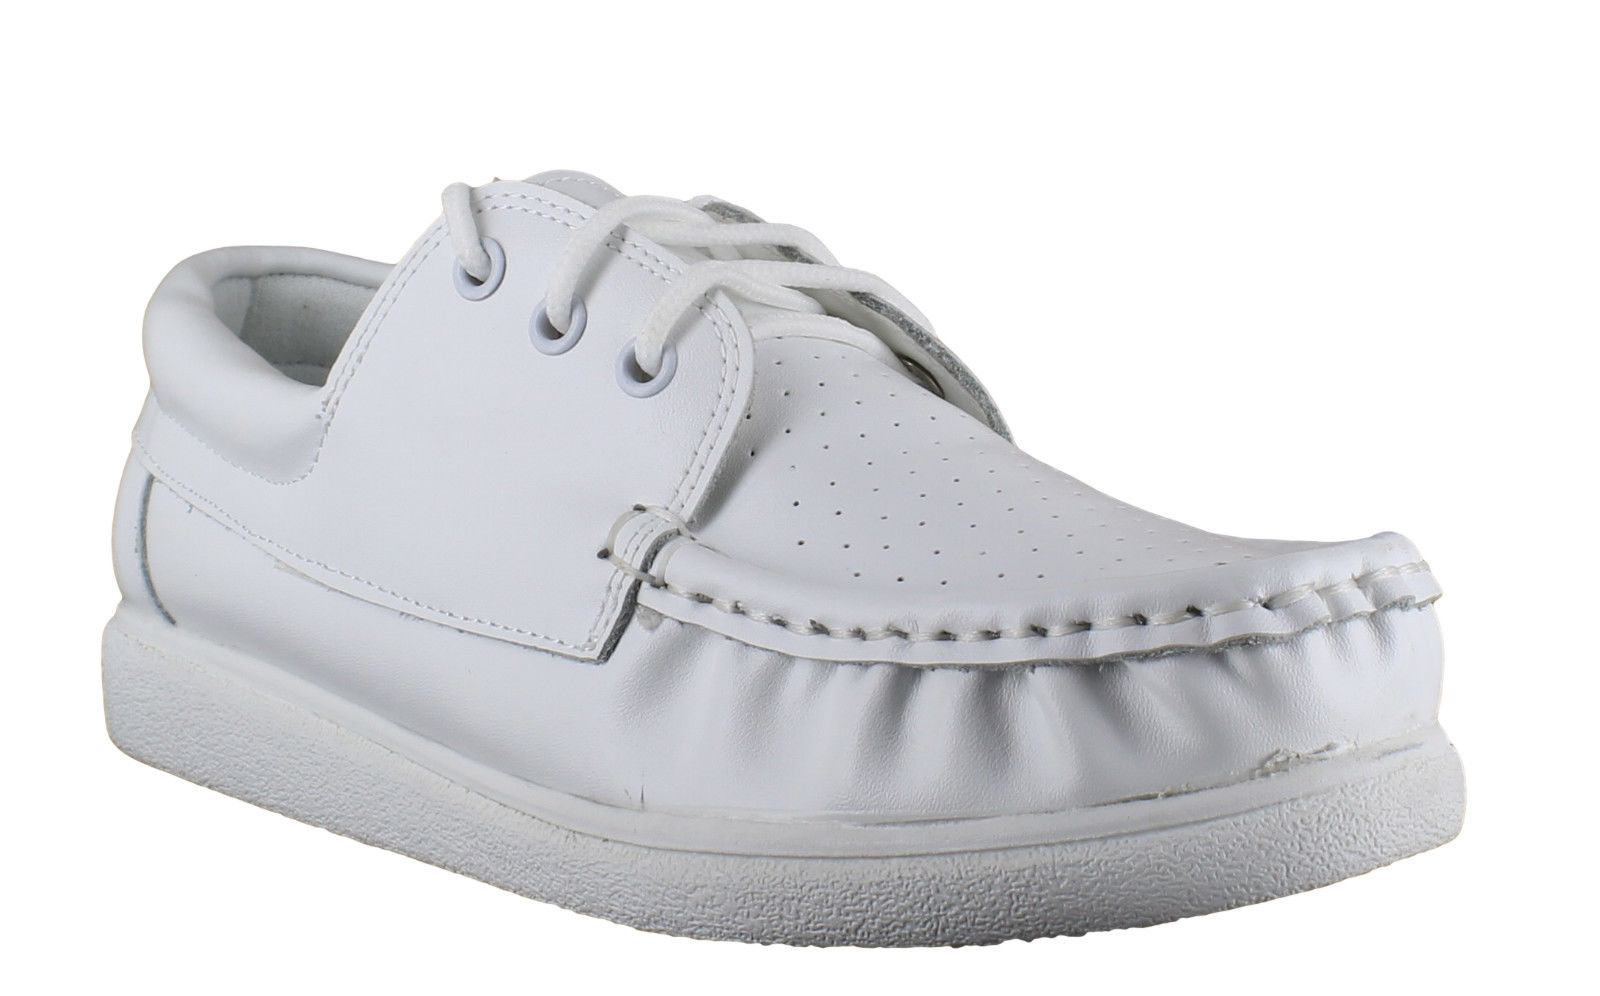 Bowling Shoes For Sale On Ebay